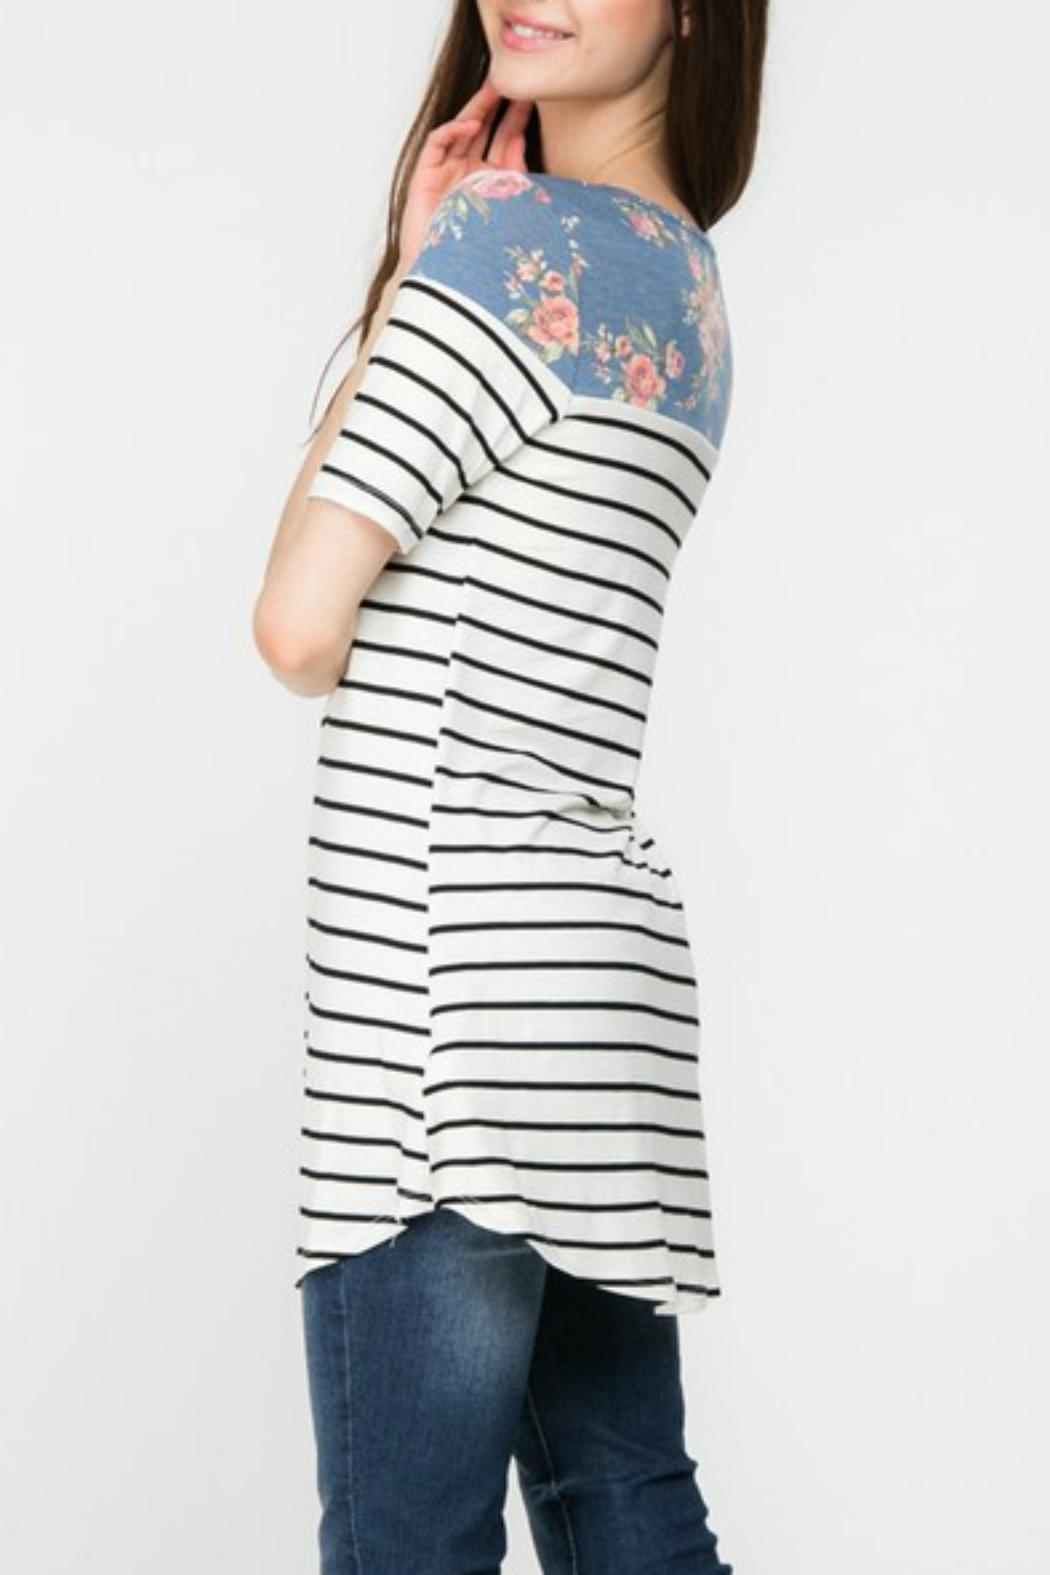 Adora Flowers-And-Stripes Long Tee - Front Full Image